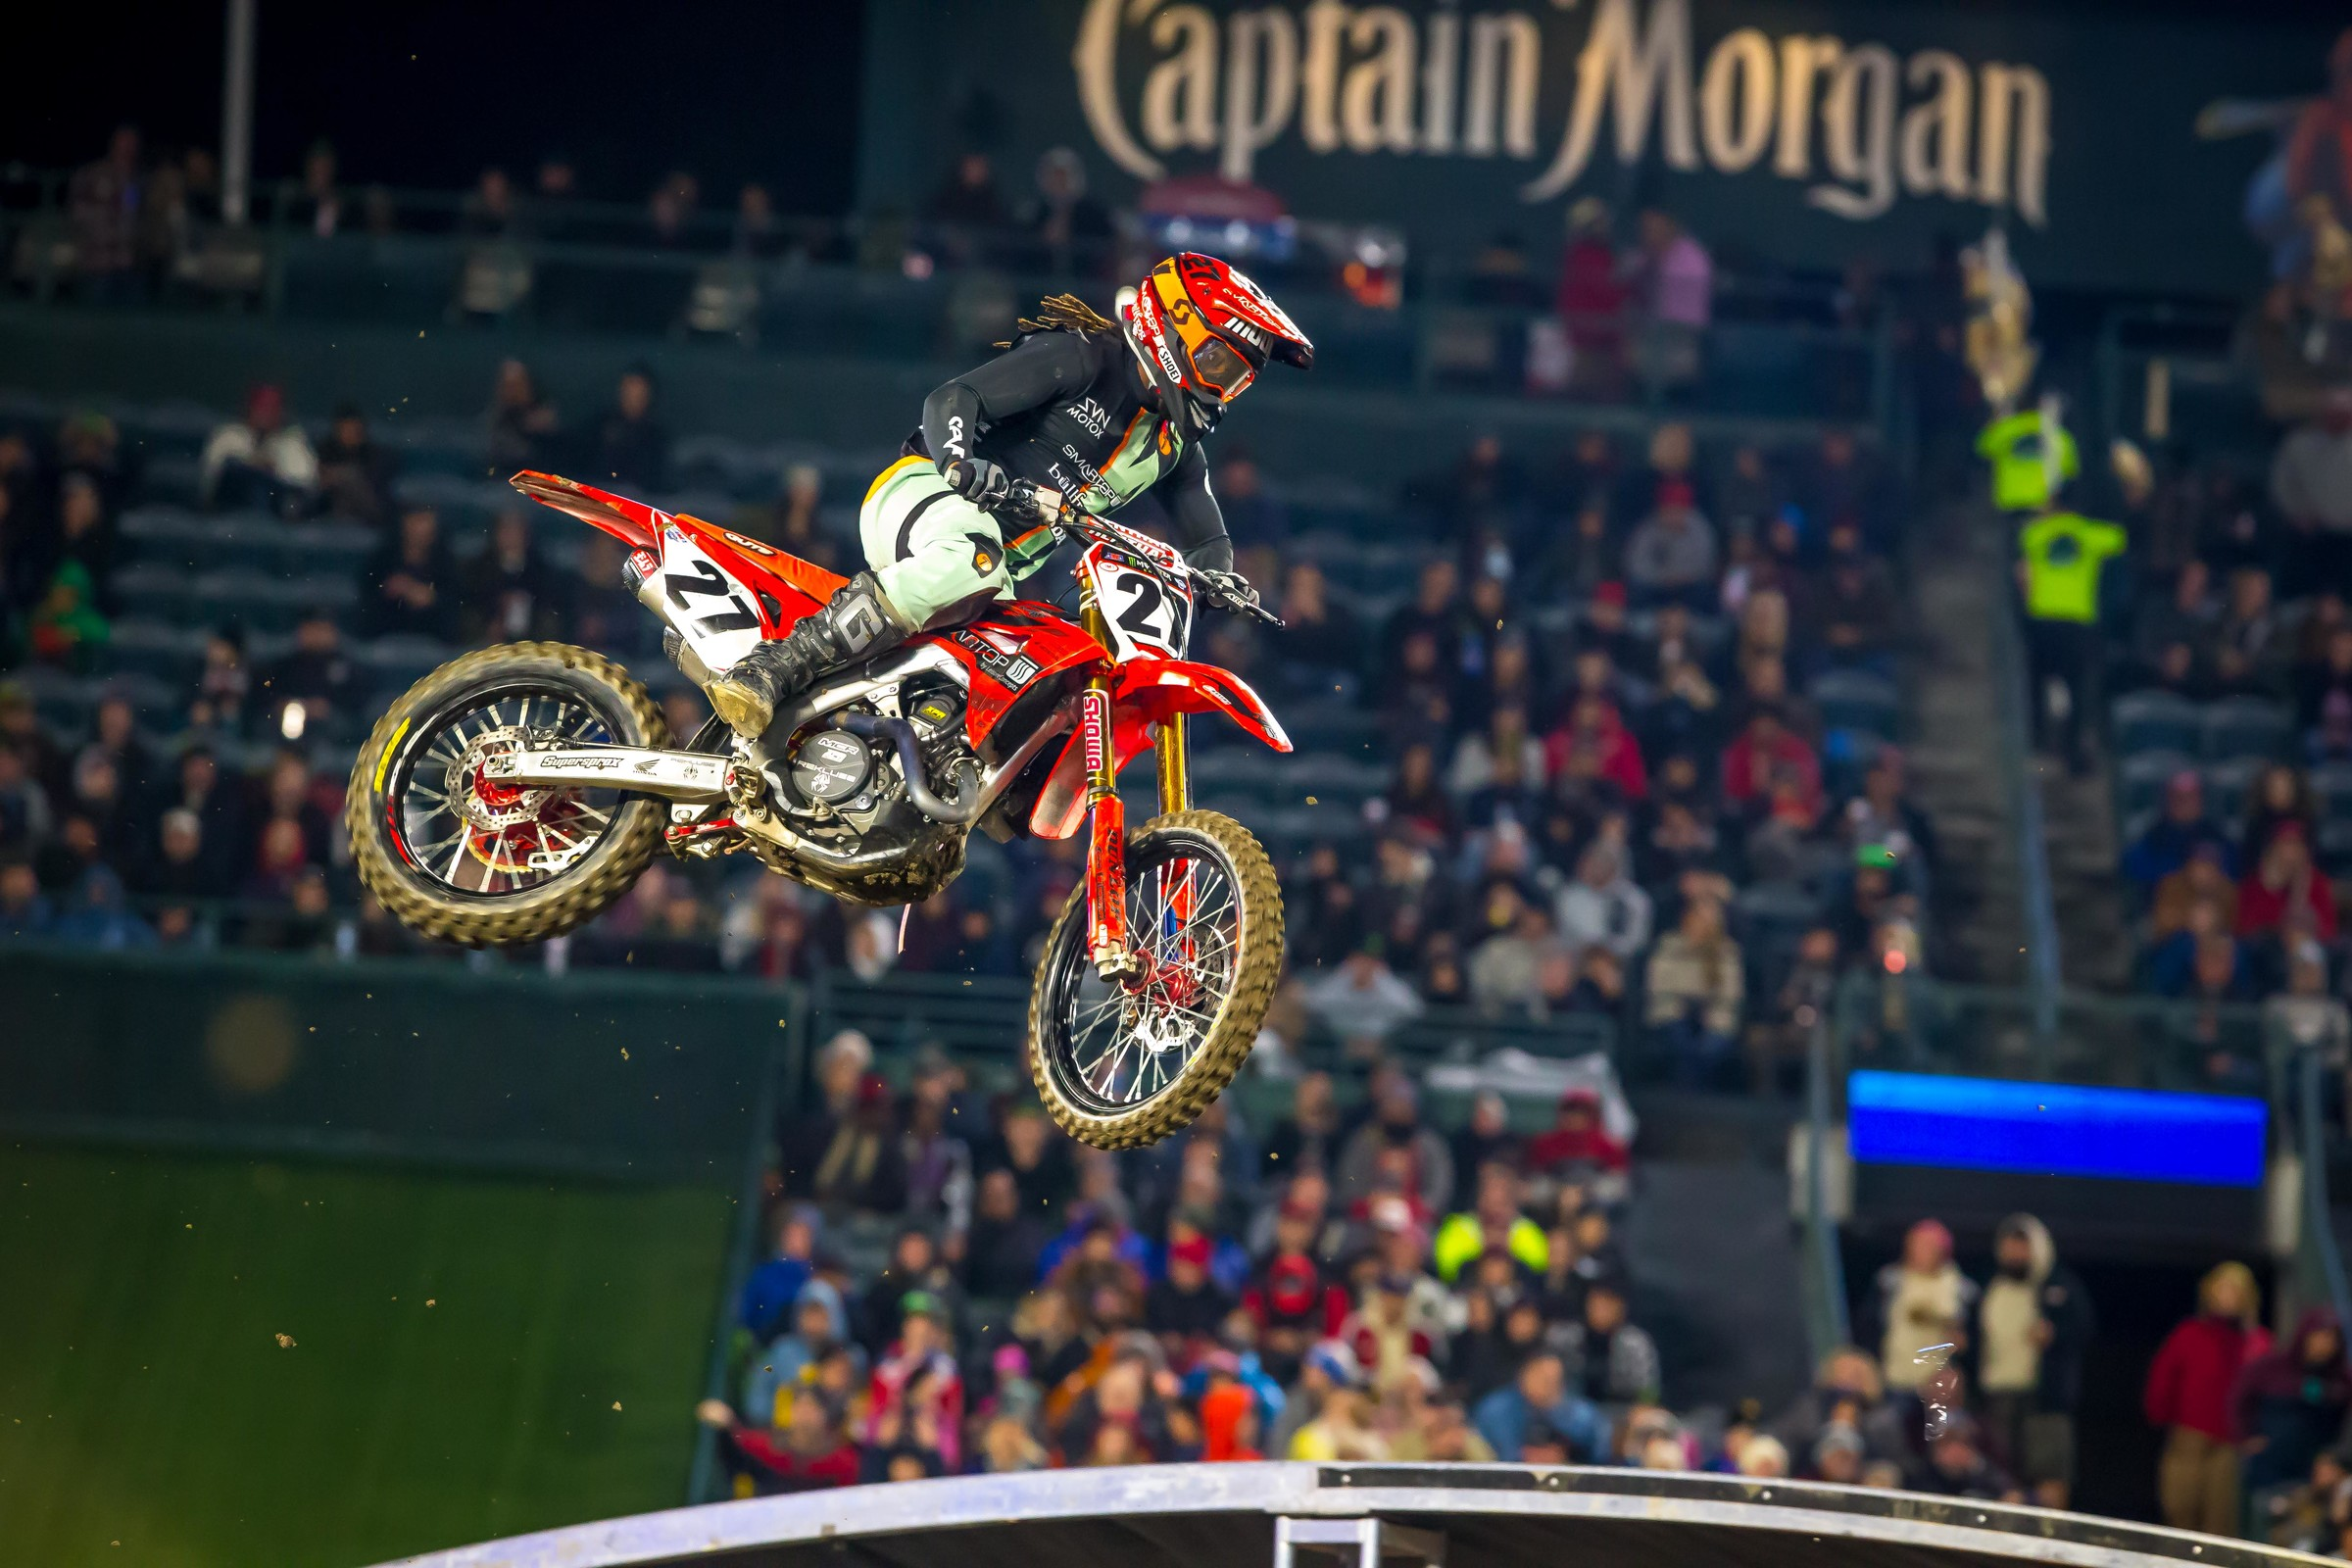 Malcolm Stewart had the third fastest qualifying time in the 450SX at Anaheim 1 and was near the top of the pack in the main event before several miscues dropped him to a seventh place finish.